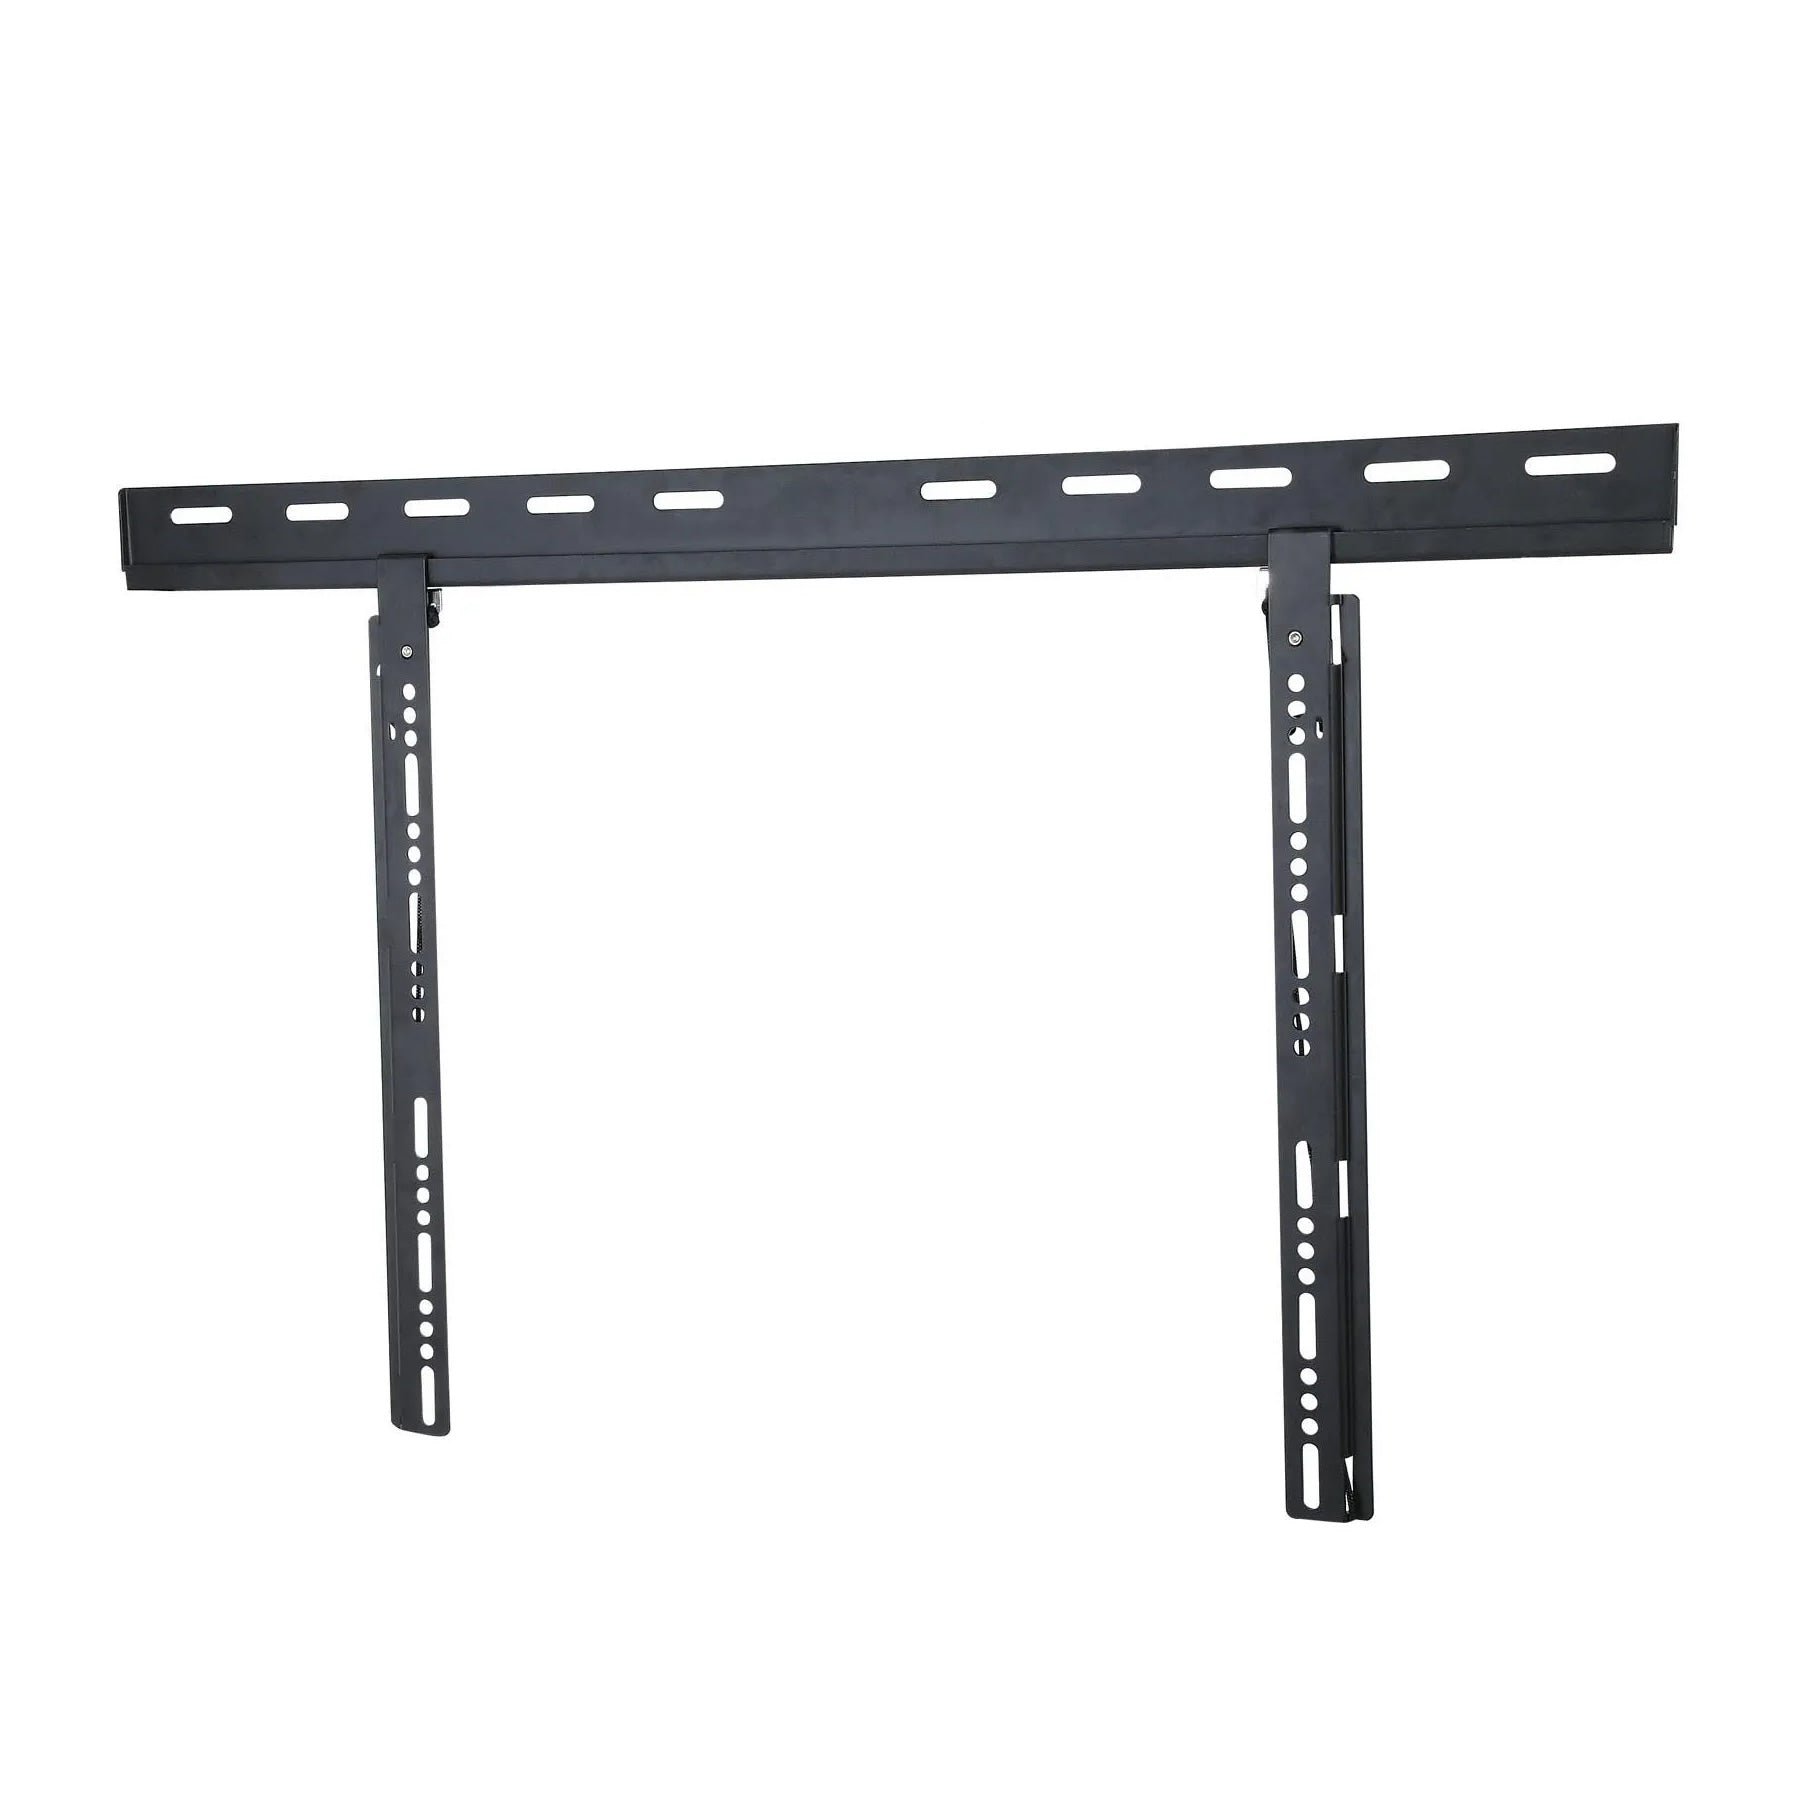 64-1125B Ultra Slim TV Wall Mount Bracket for 37-60 inches TVs